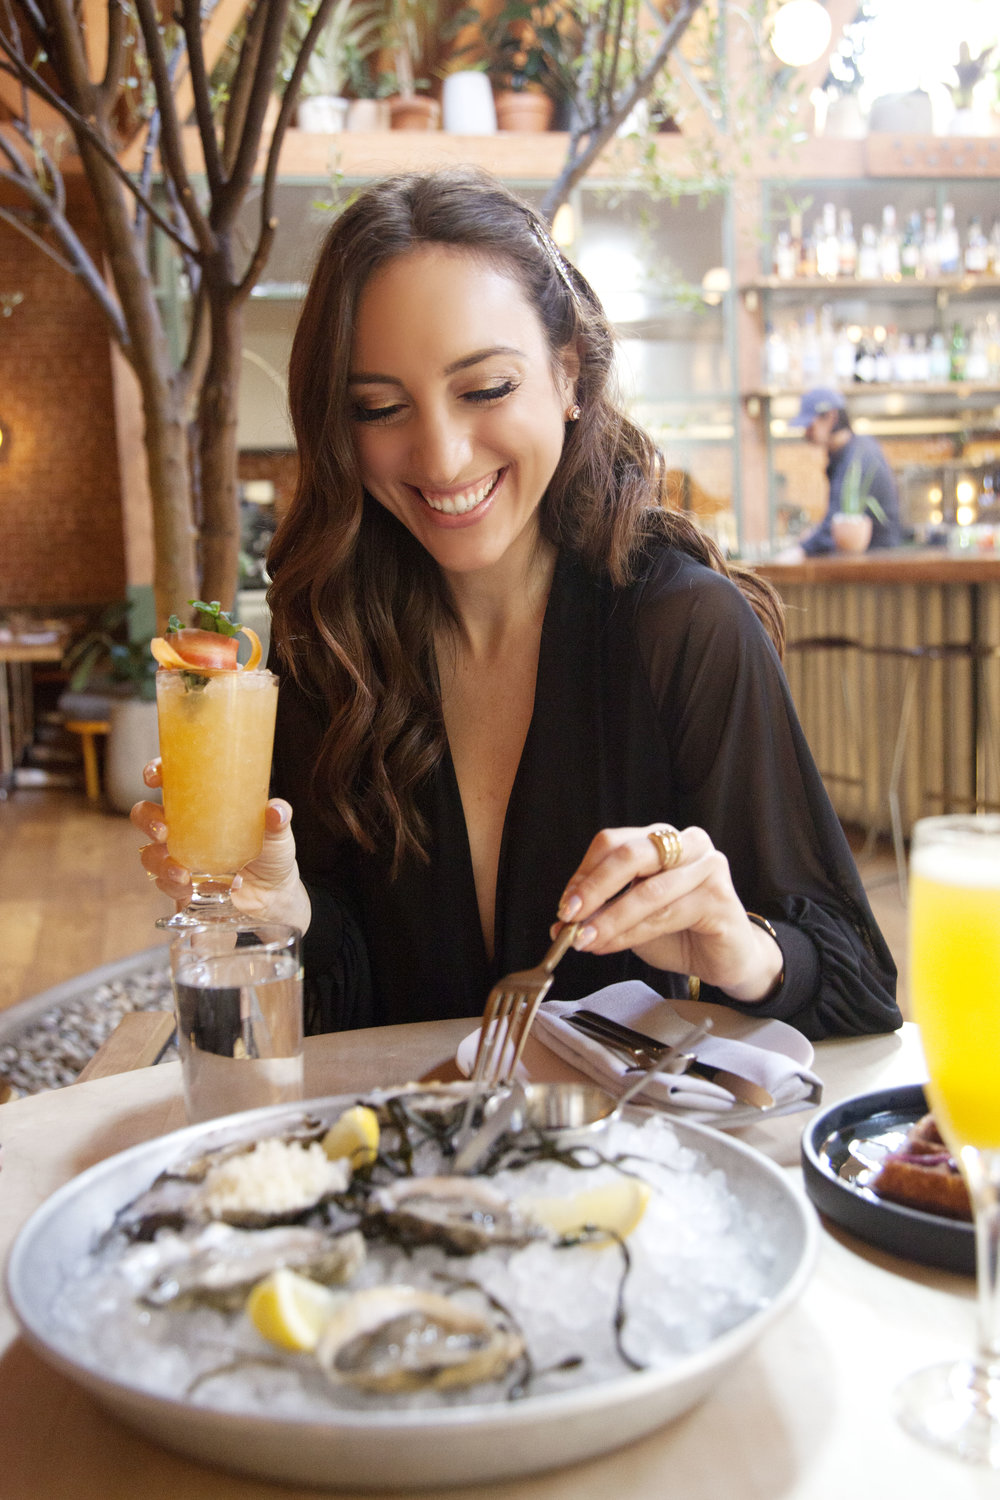 Atrium Los Angeles - Brielle Galekovic of The Gilded Bellini - Valentine's Day Brunch Date Spots in LA